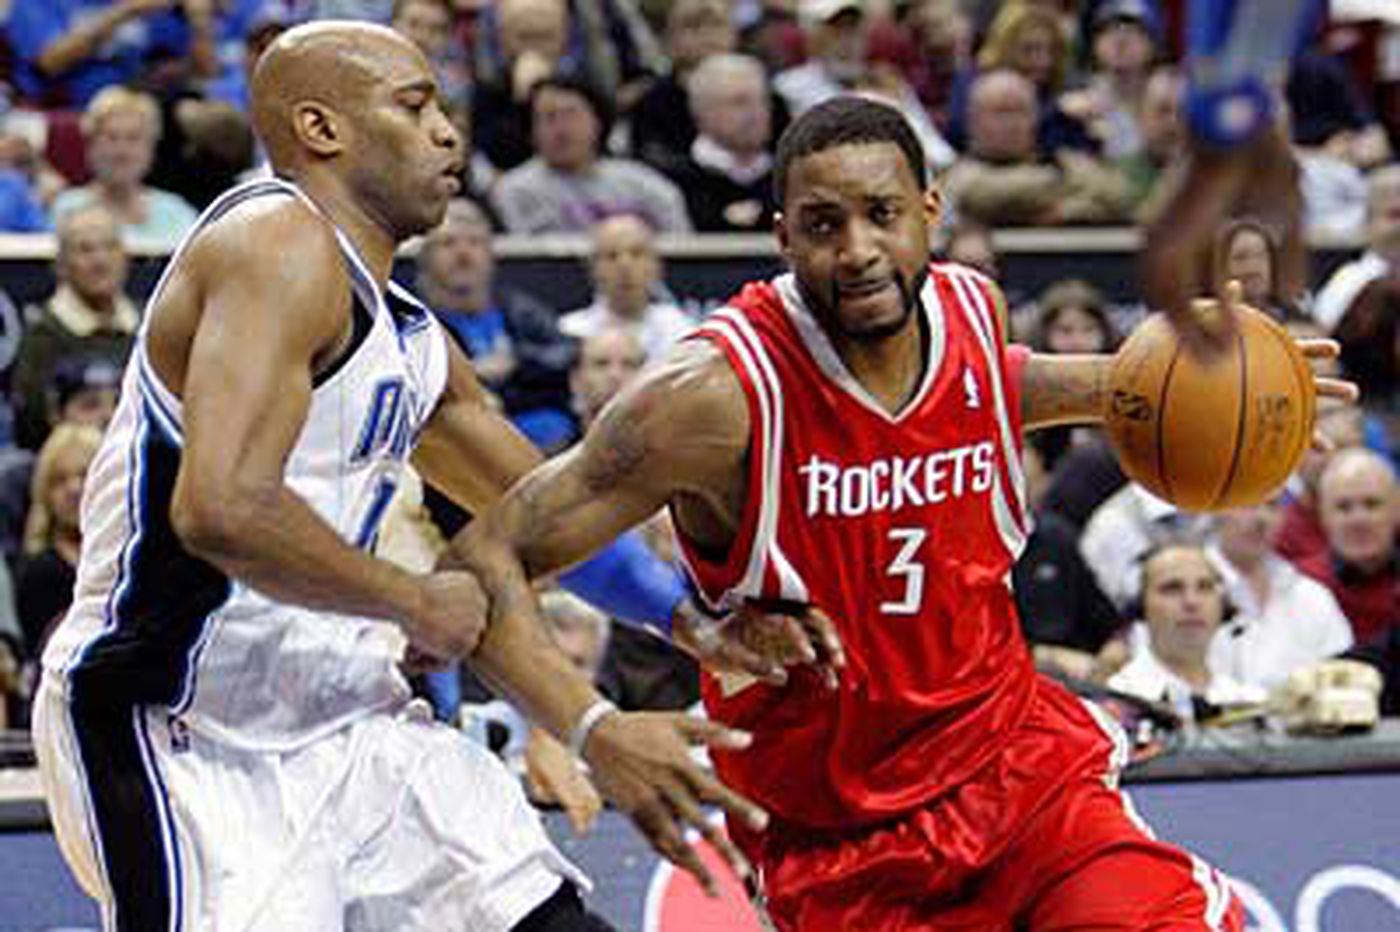 John Smallwood: McGrady could help Sixers